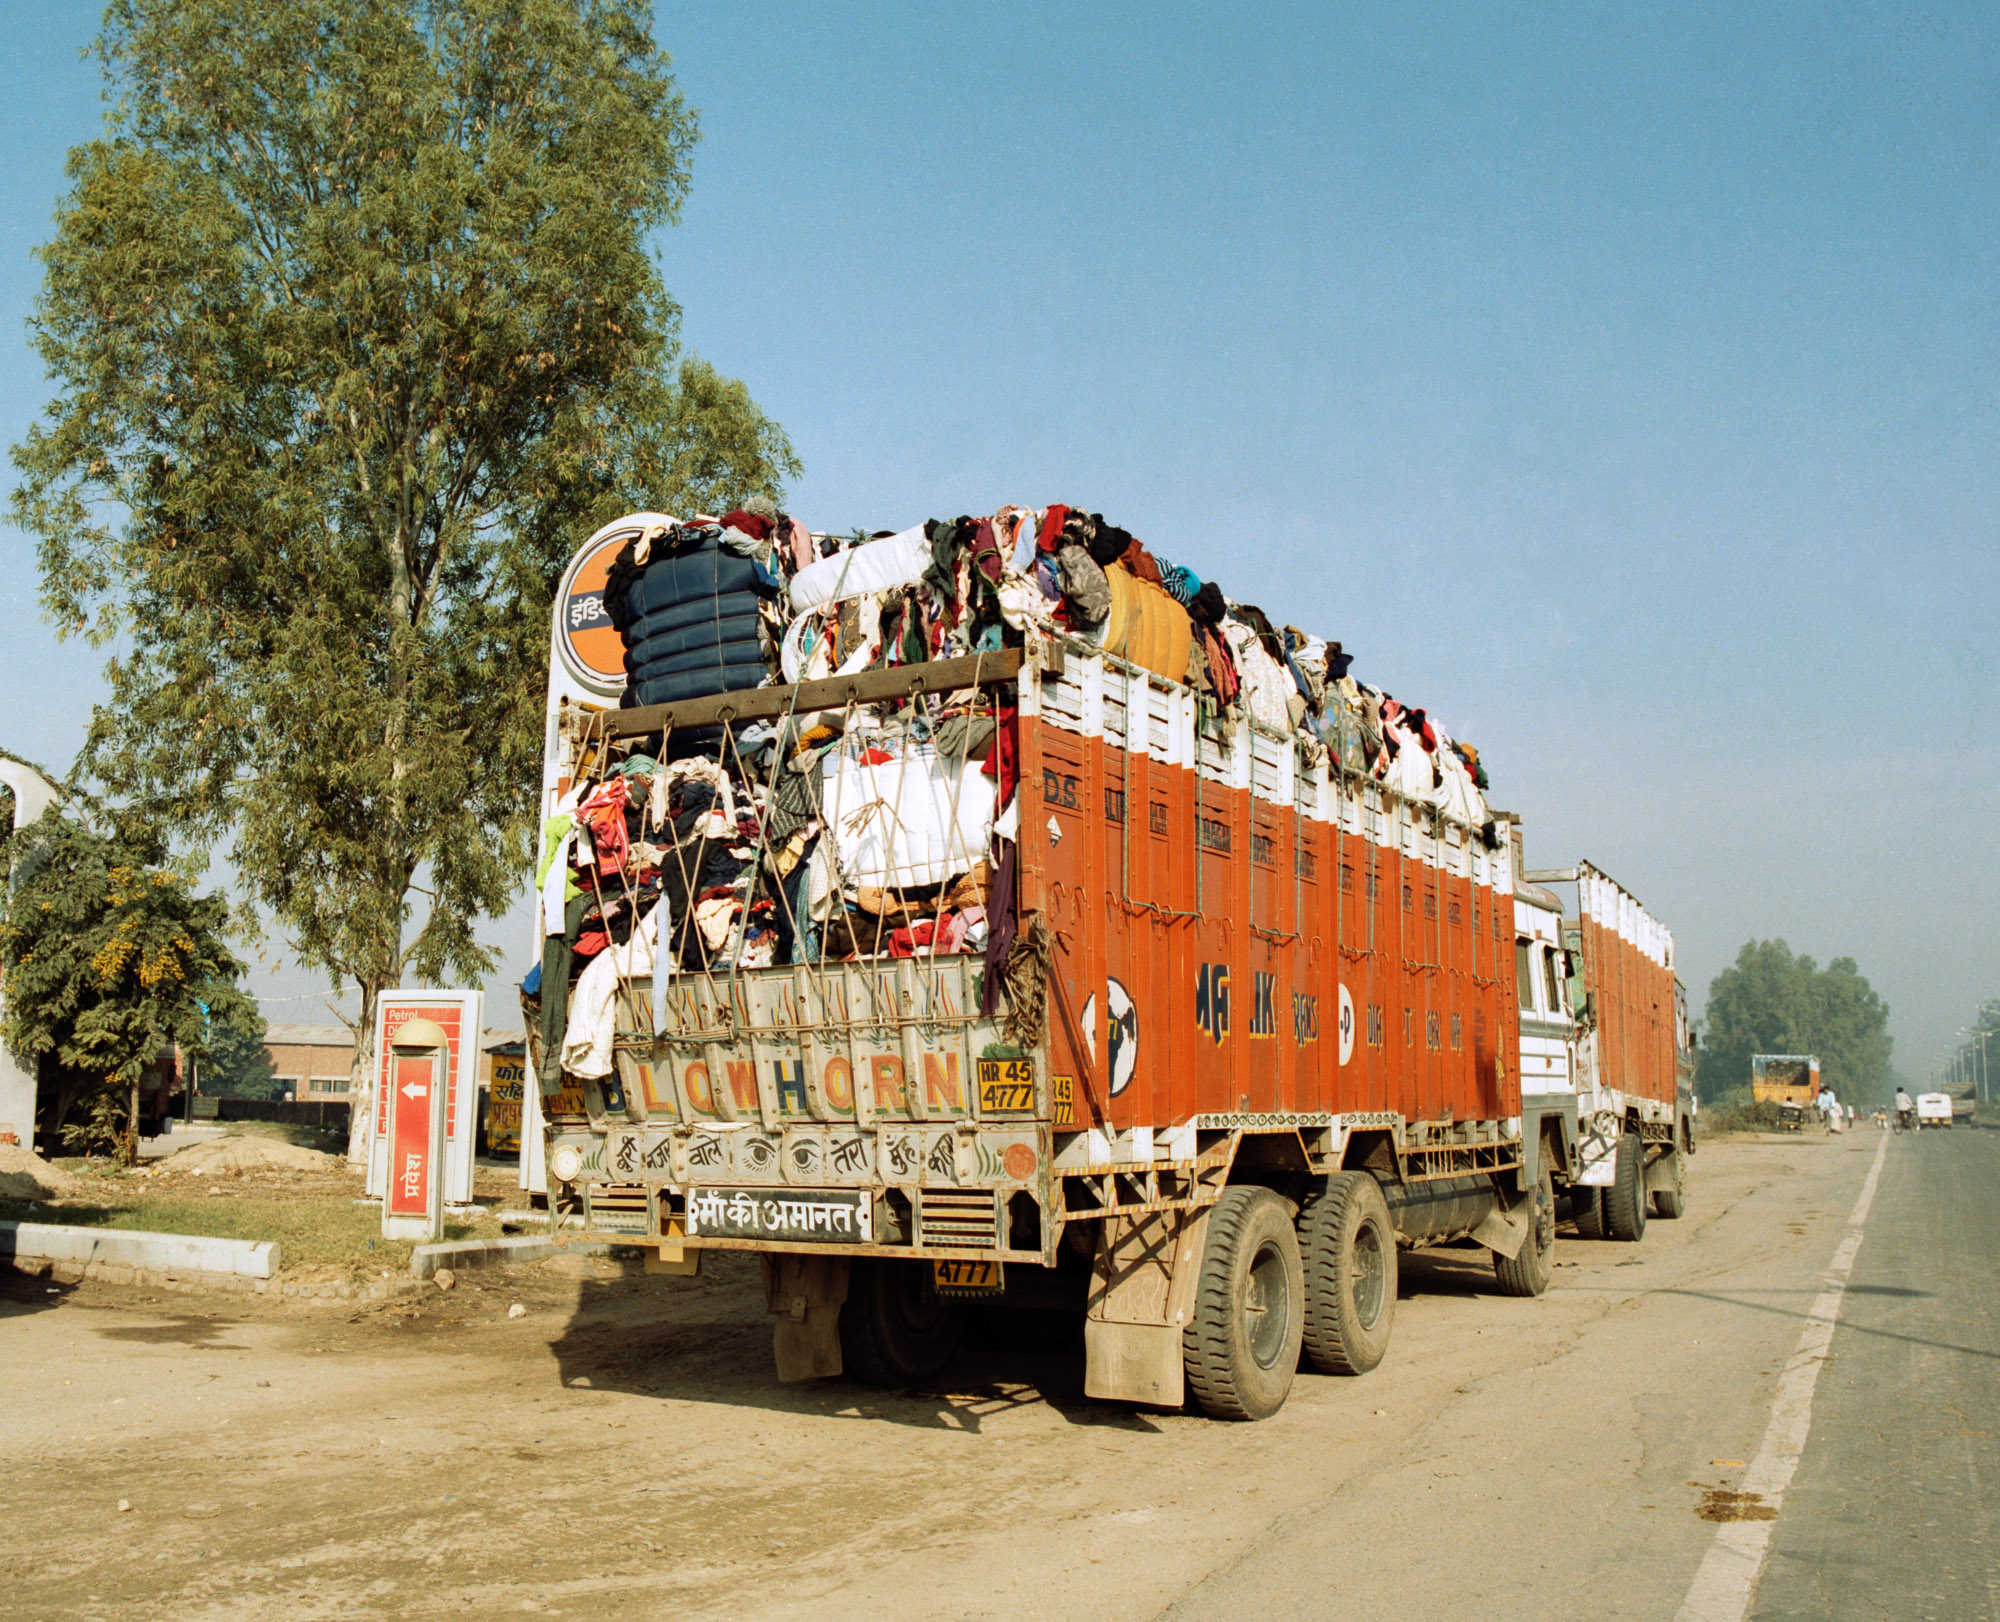 Over 100,000 tonnes of used clothing  is imported into India every year for recycling. Every day, truck loads of imported clothing bales are driven from India's ports up the Grand Trunk Road to Panipat, north of Delhi.